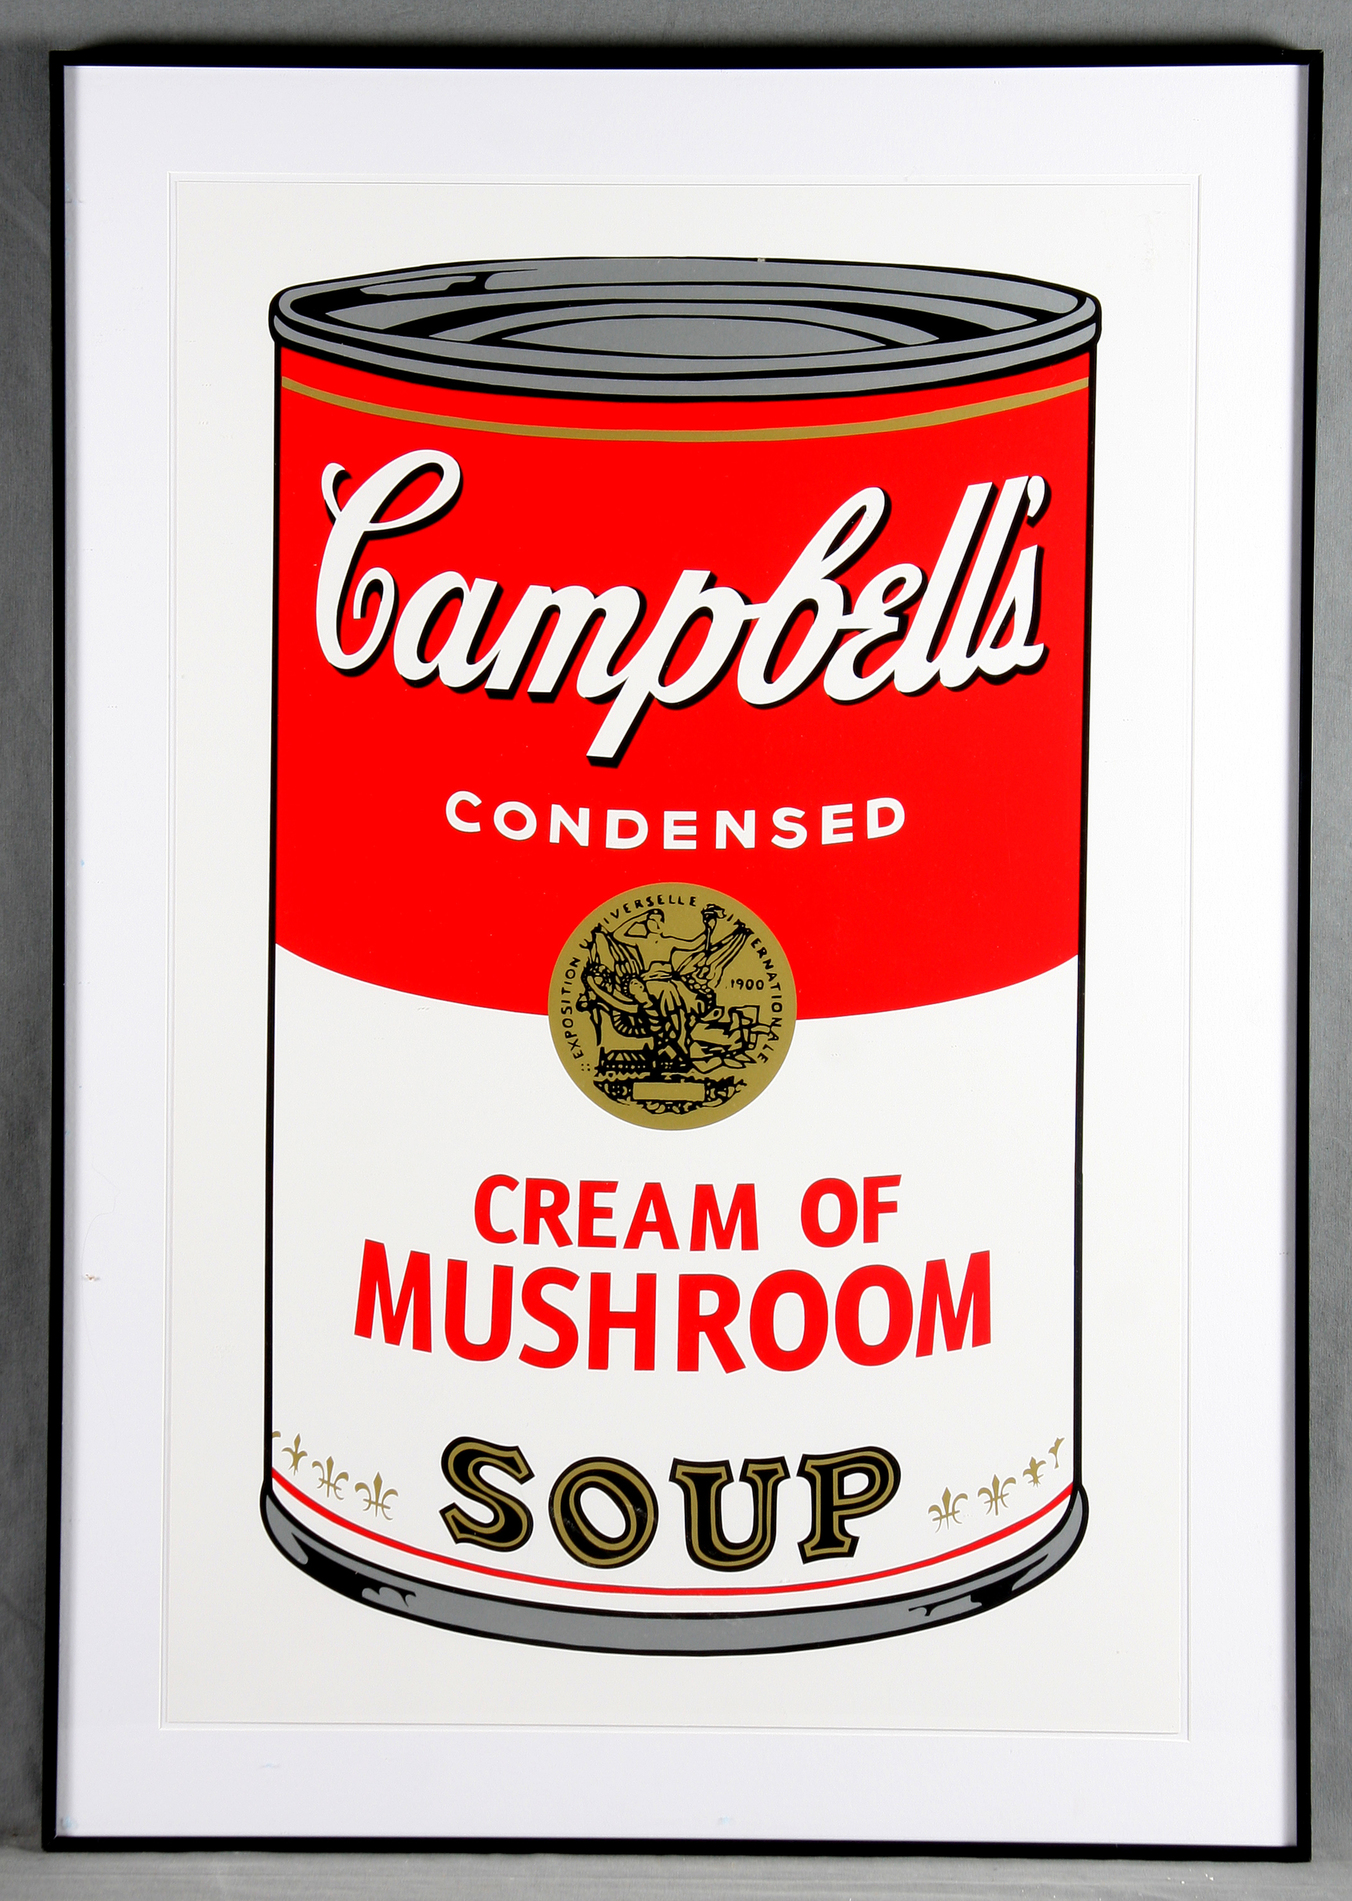 Andy Warhol-Campbell's Soup Can 11.53. Cream of Mushroom-1988